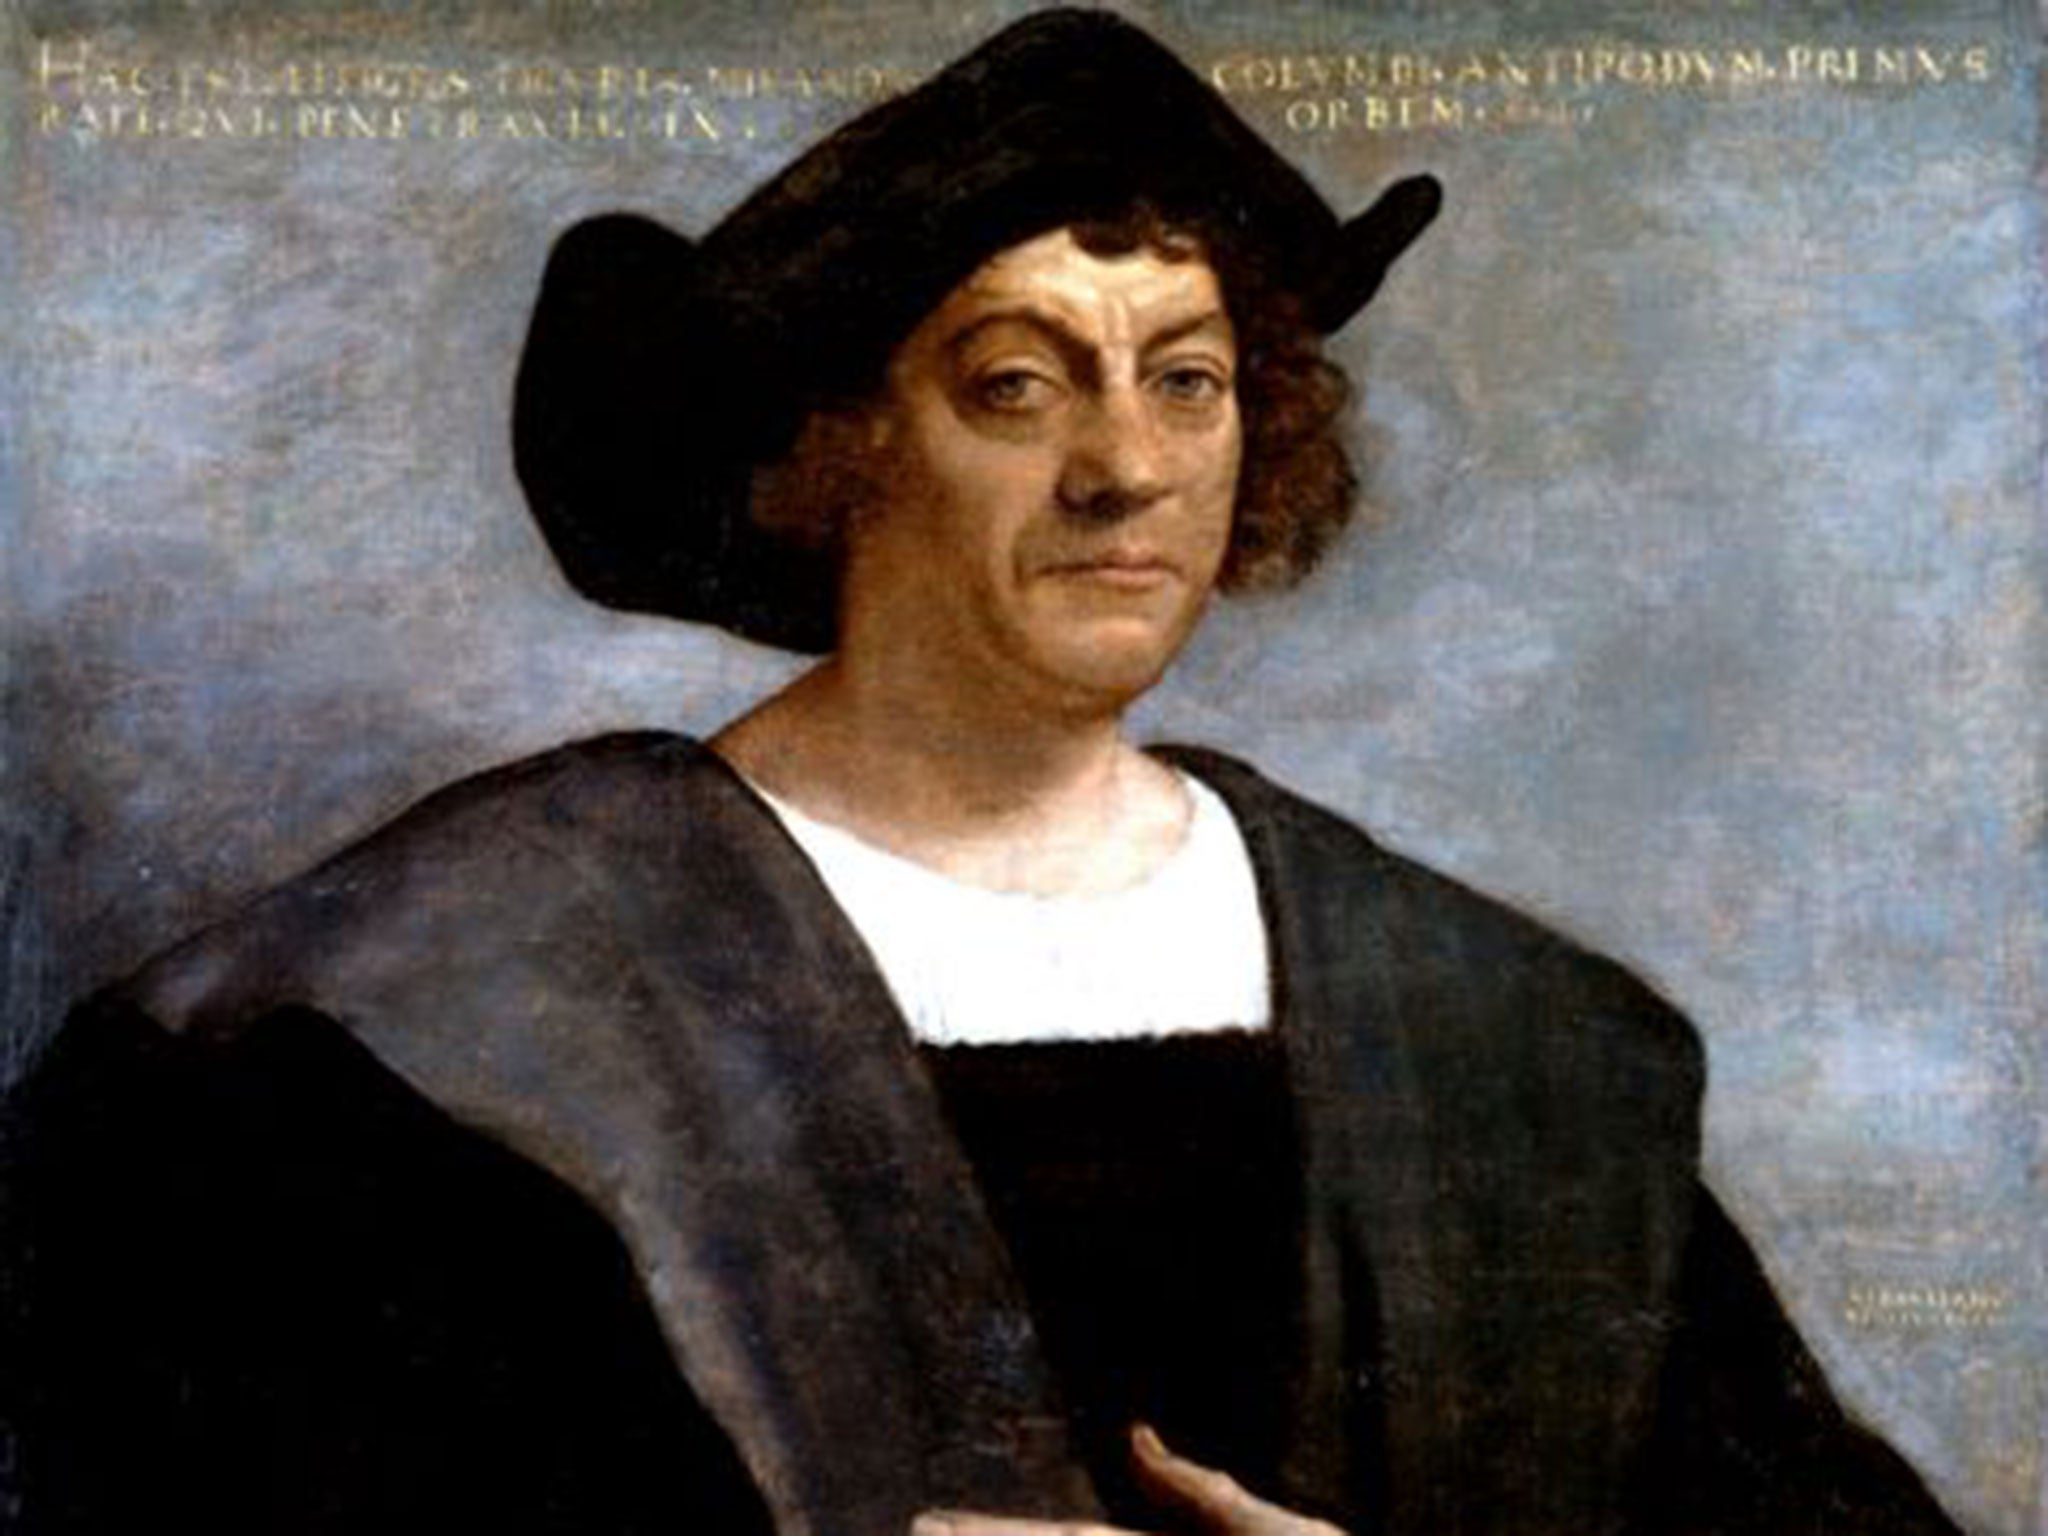 Christopher Columbus  The life and legacy of the famous explorer     The Independent Christopher Columbus  The life and legacy of the famous explorer   The Independent